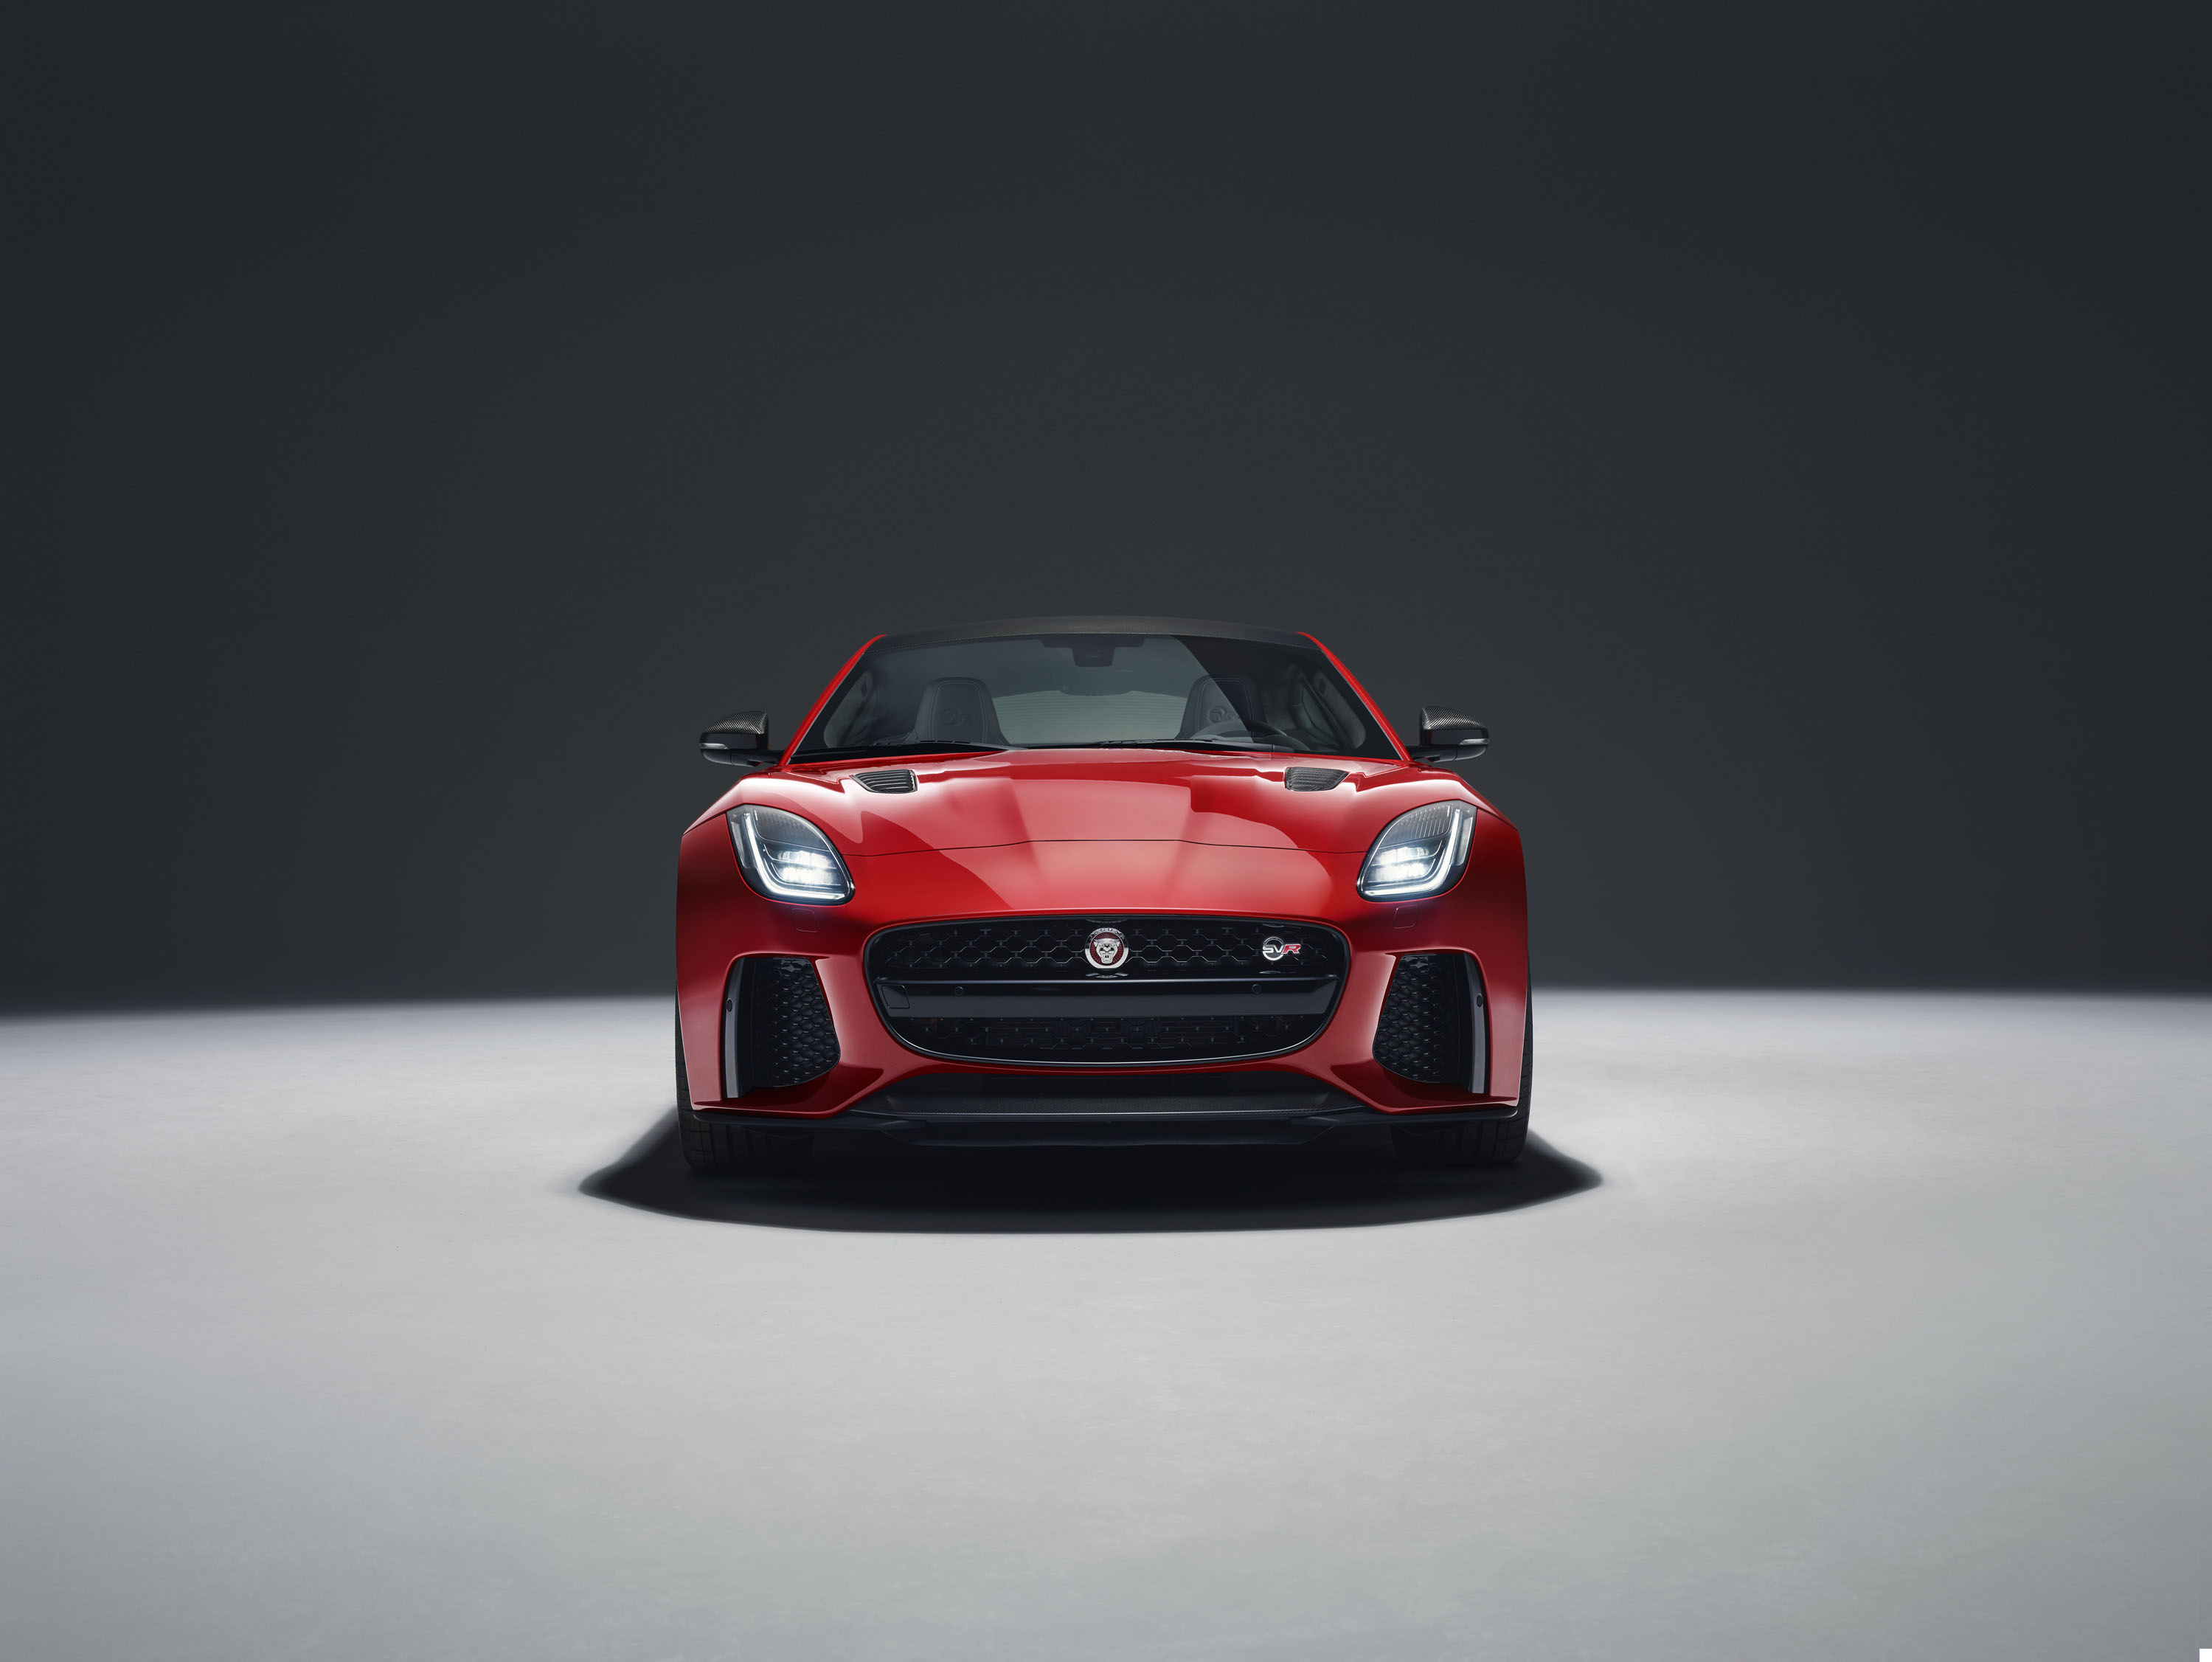 Jaguar Product Boss Hints At Second Sports Car